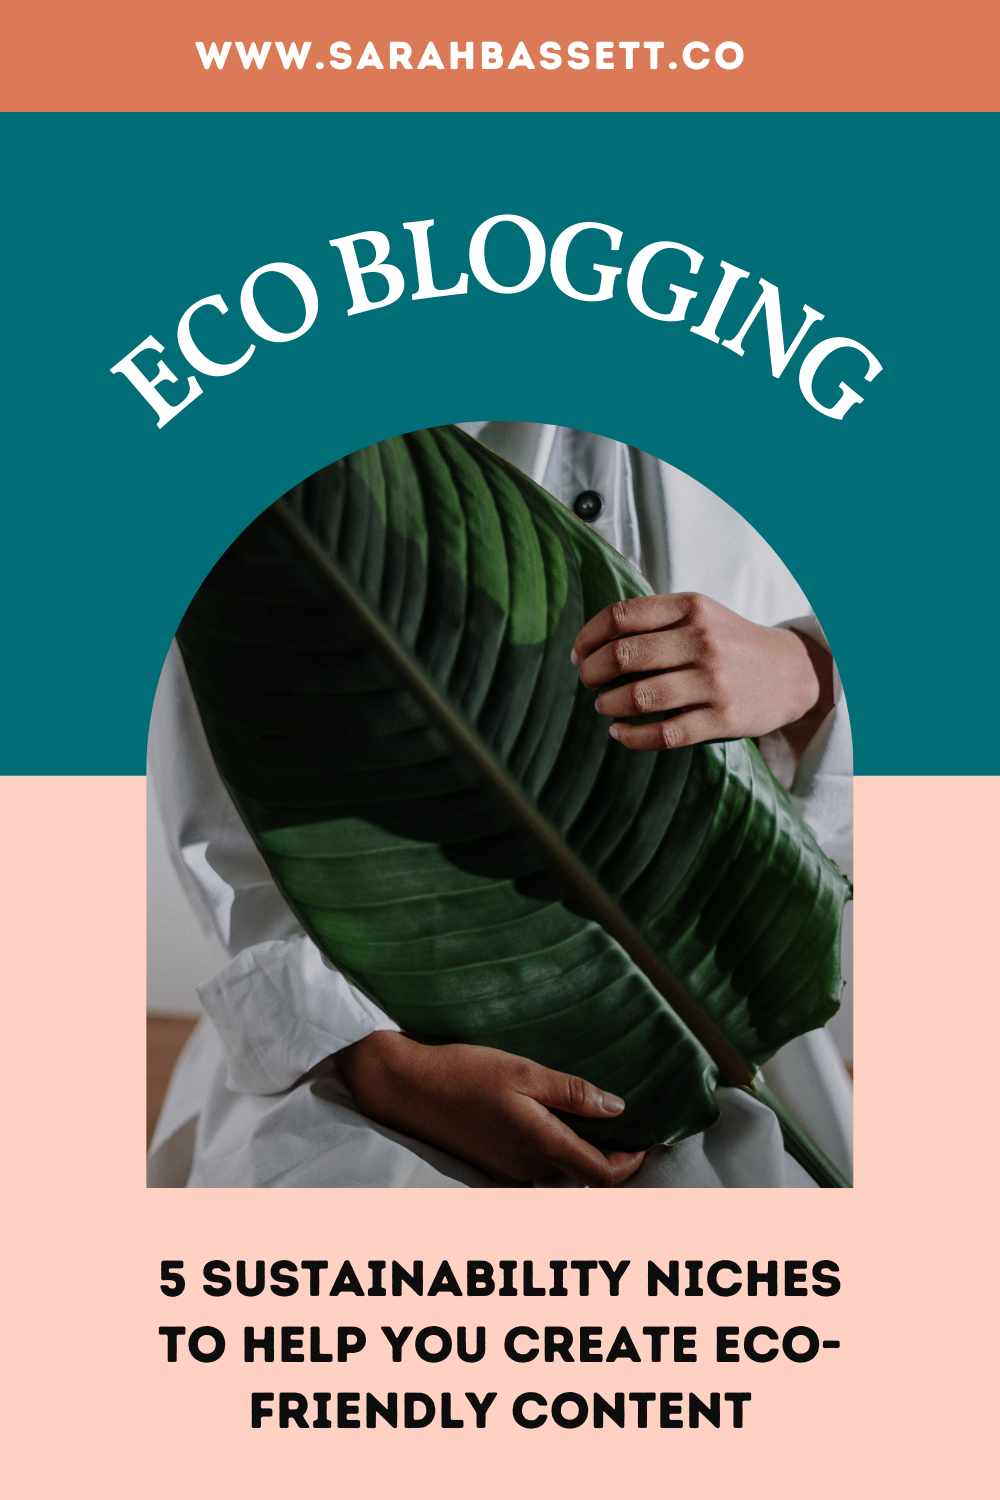 Eco blogging 5 sustainability niches to help you create eco-friendly zero waste and plastic-free content for blogs, websites, social media, podcasts